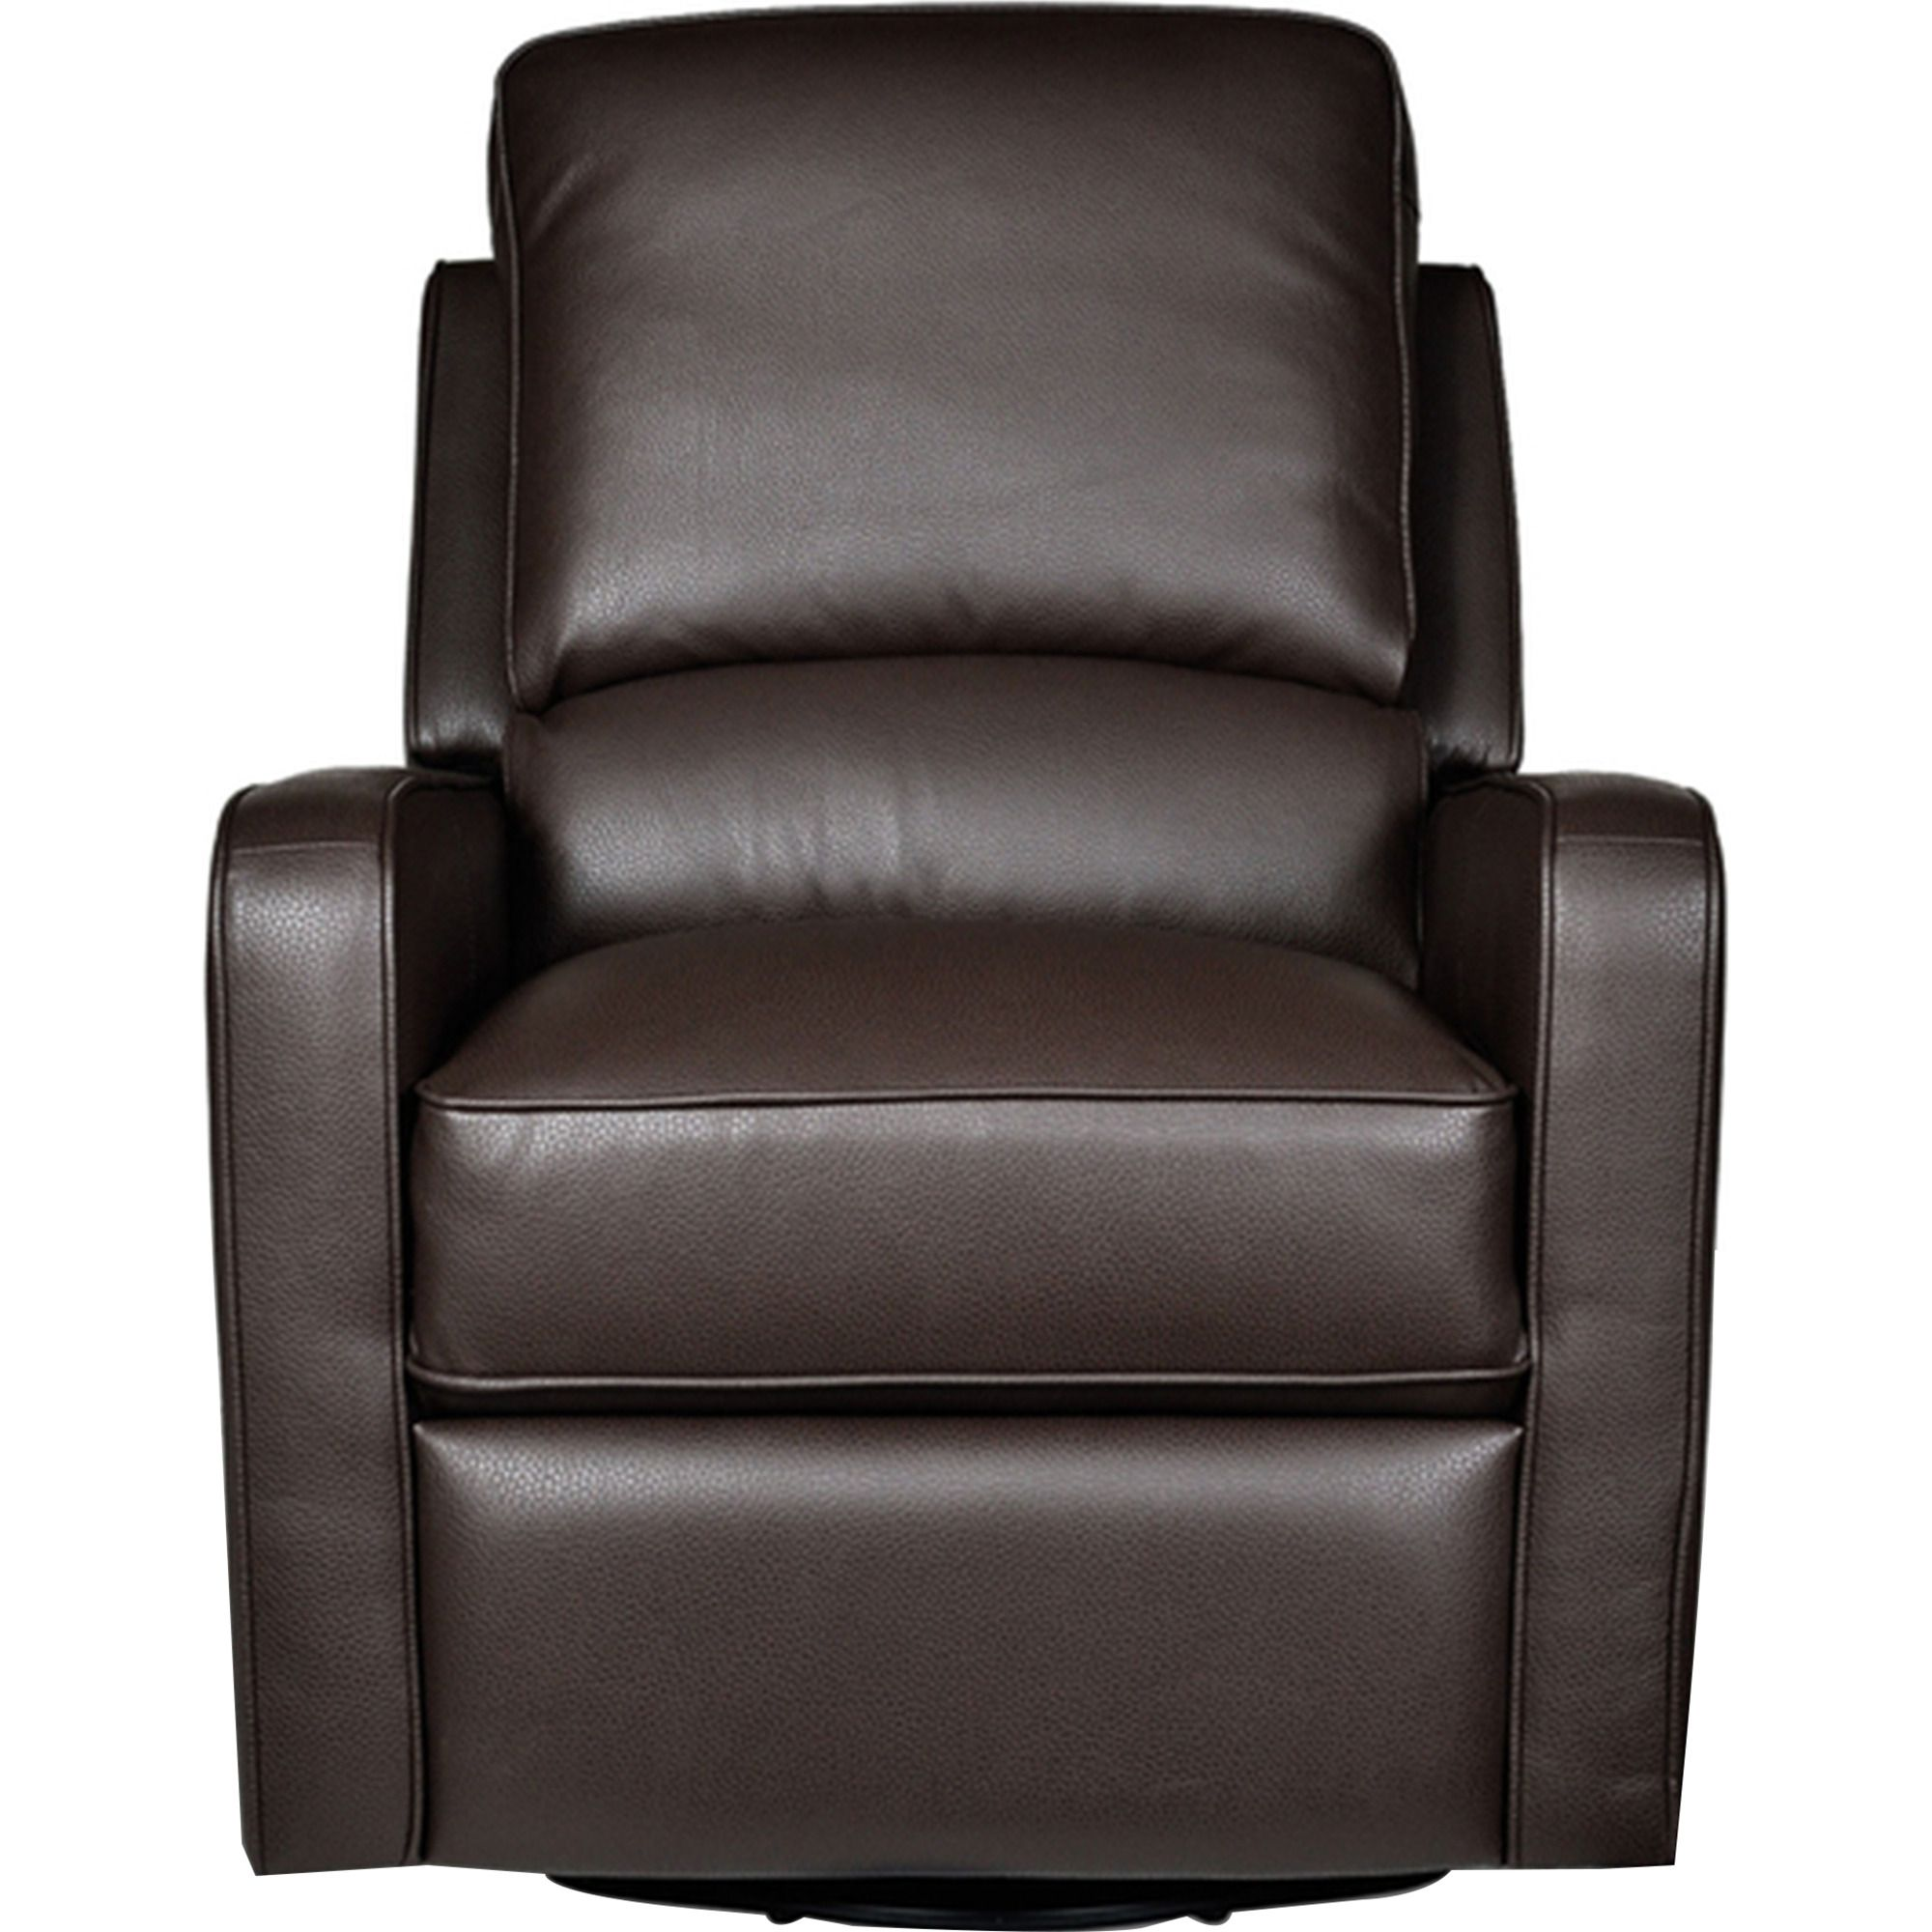 Perth Swivel Glider Recliner in Brown   Opulence Home Furniture   Home  Gallery Stores